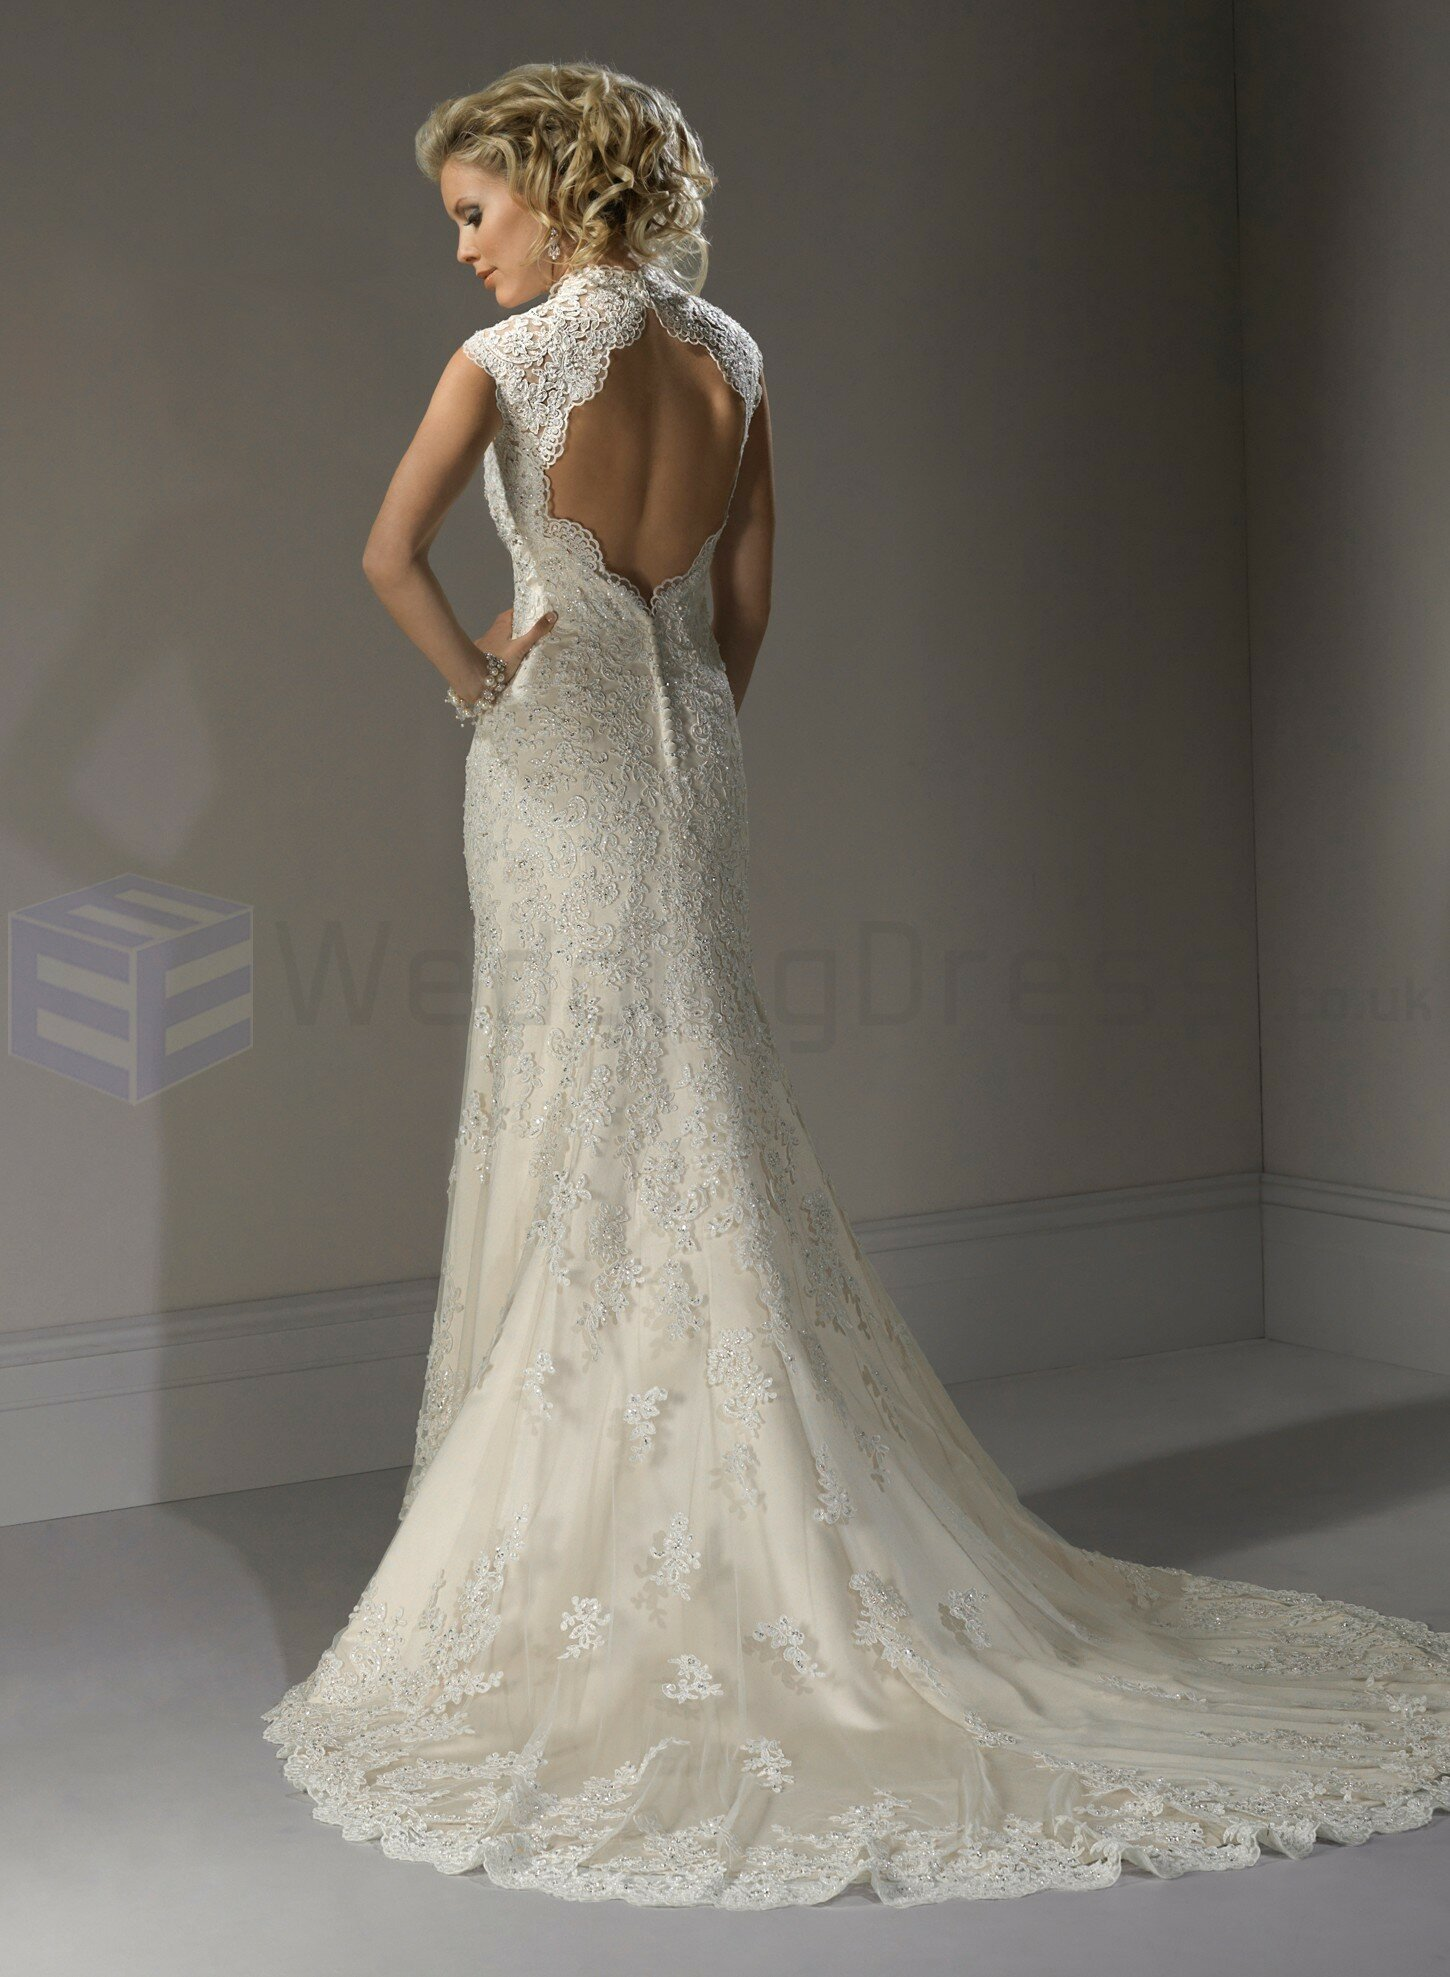 Wedding Dresses A Line Sweetheart : A line sweetheart wedding dresses pictures ideas guide